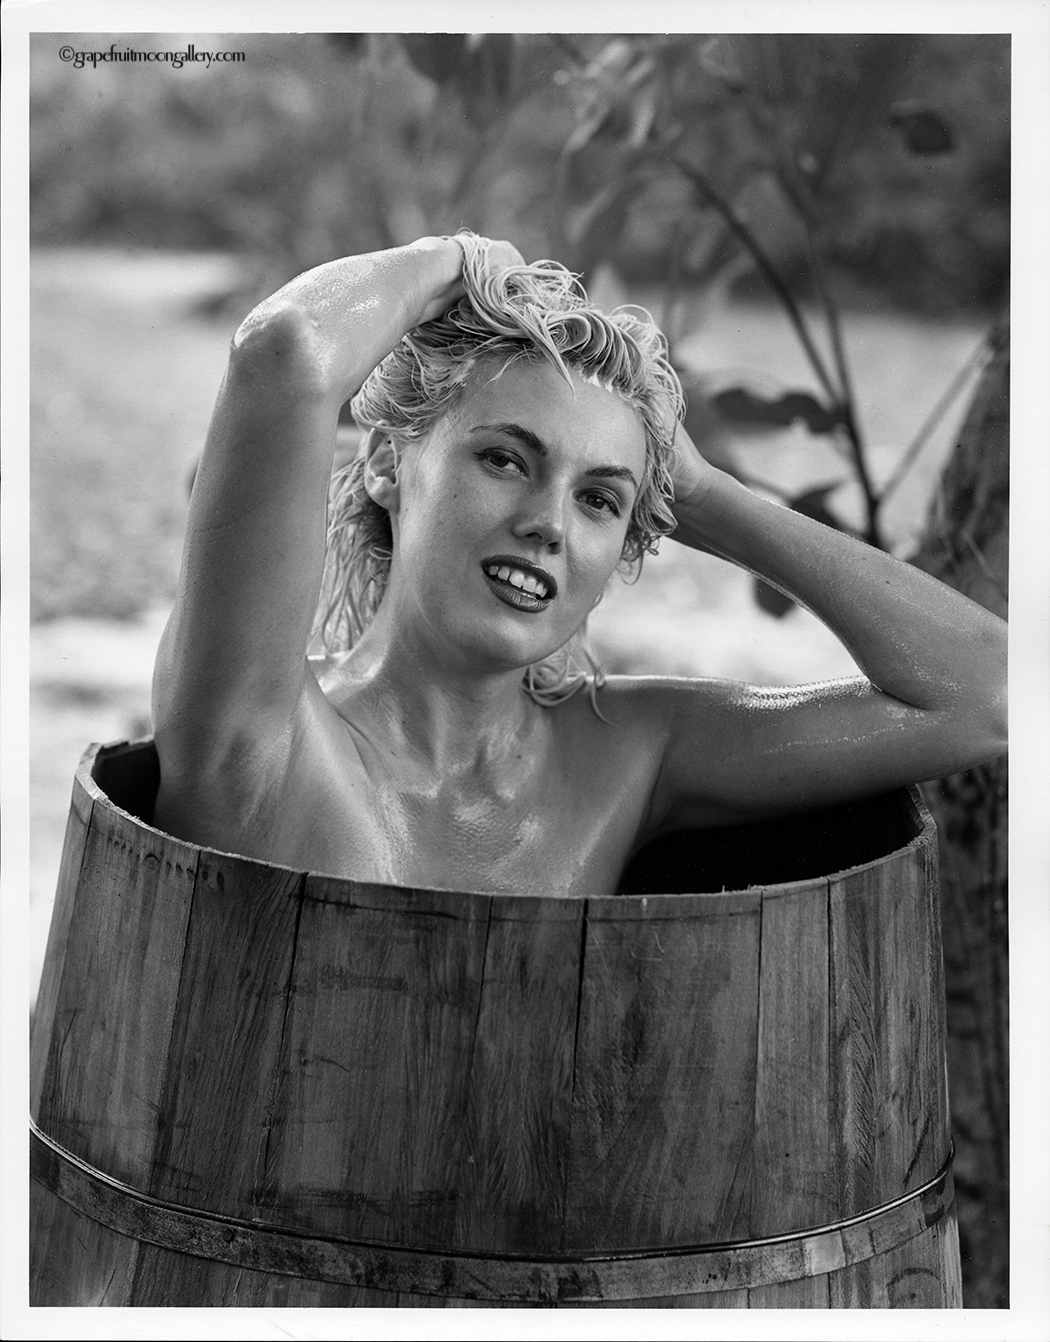 Bunny Yeager nude in barrel